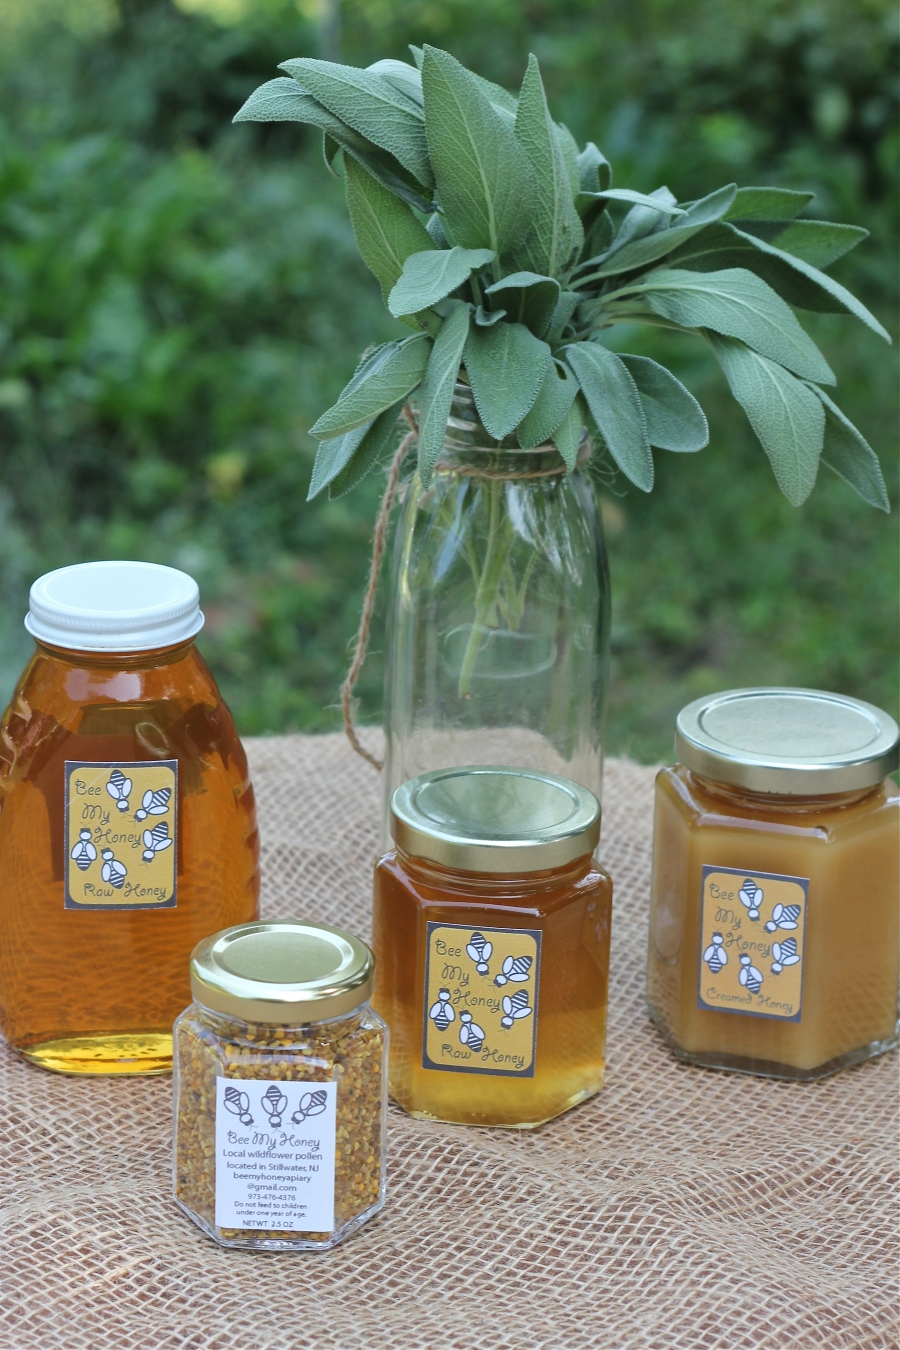 Bee My Honey Apiary products